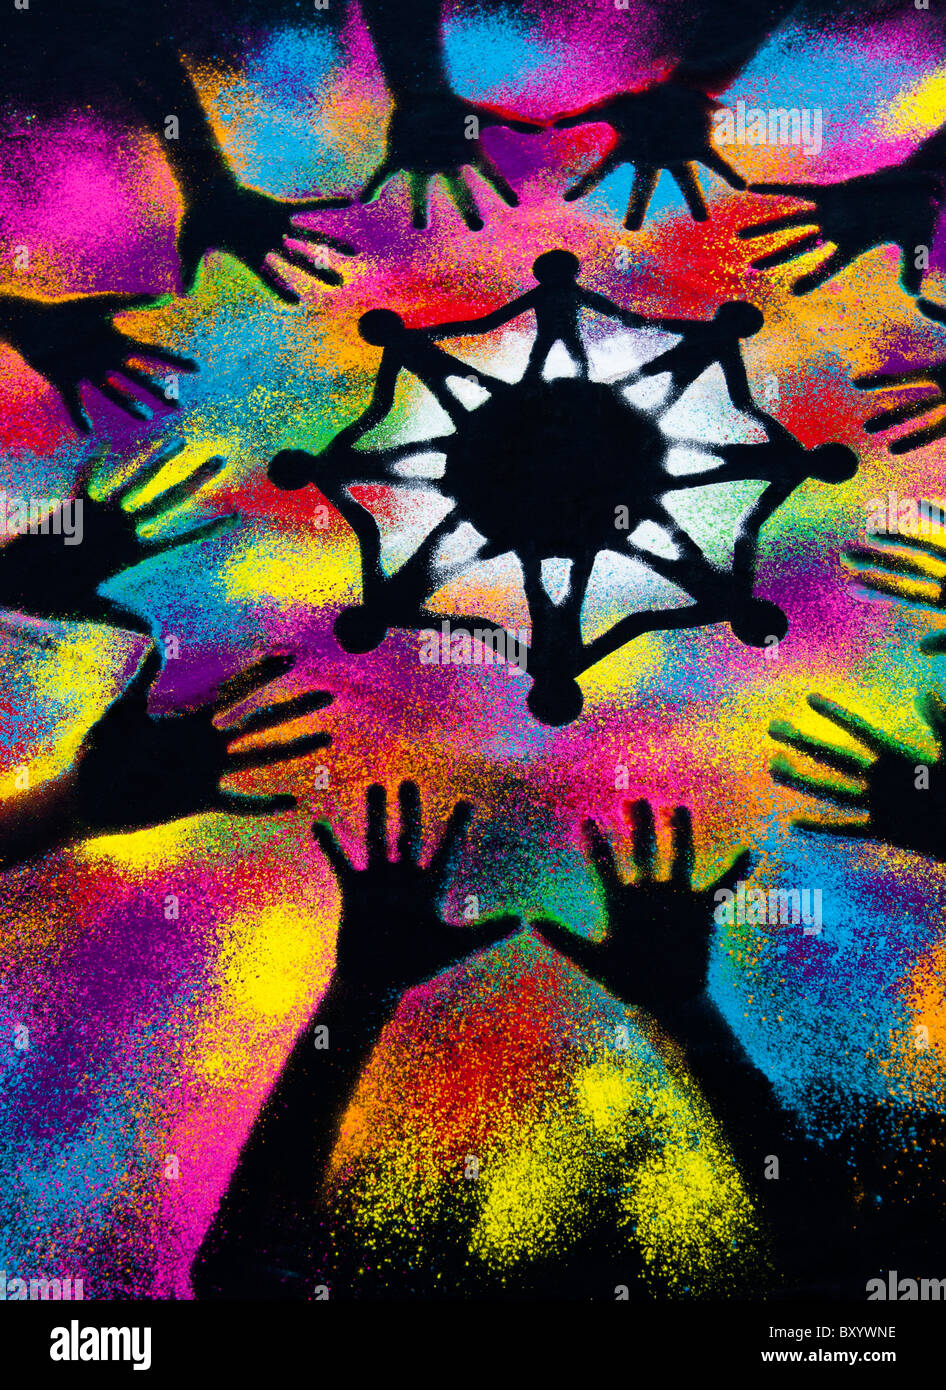 One world unity symbol surrounded by childrens hand prints made with multicoloured powder Stock Photo